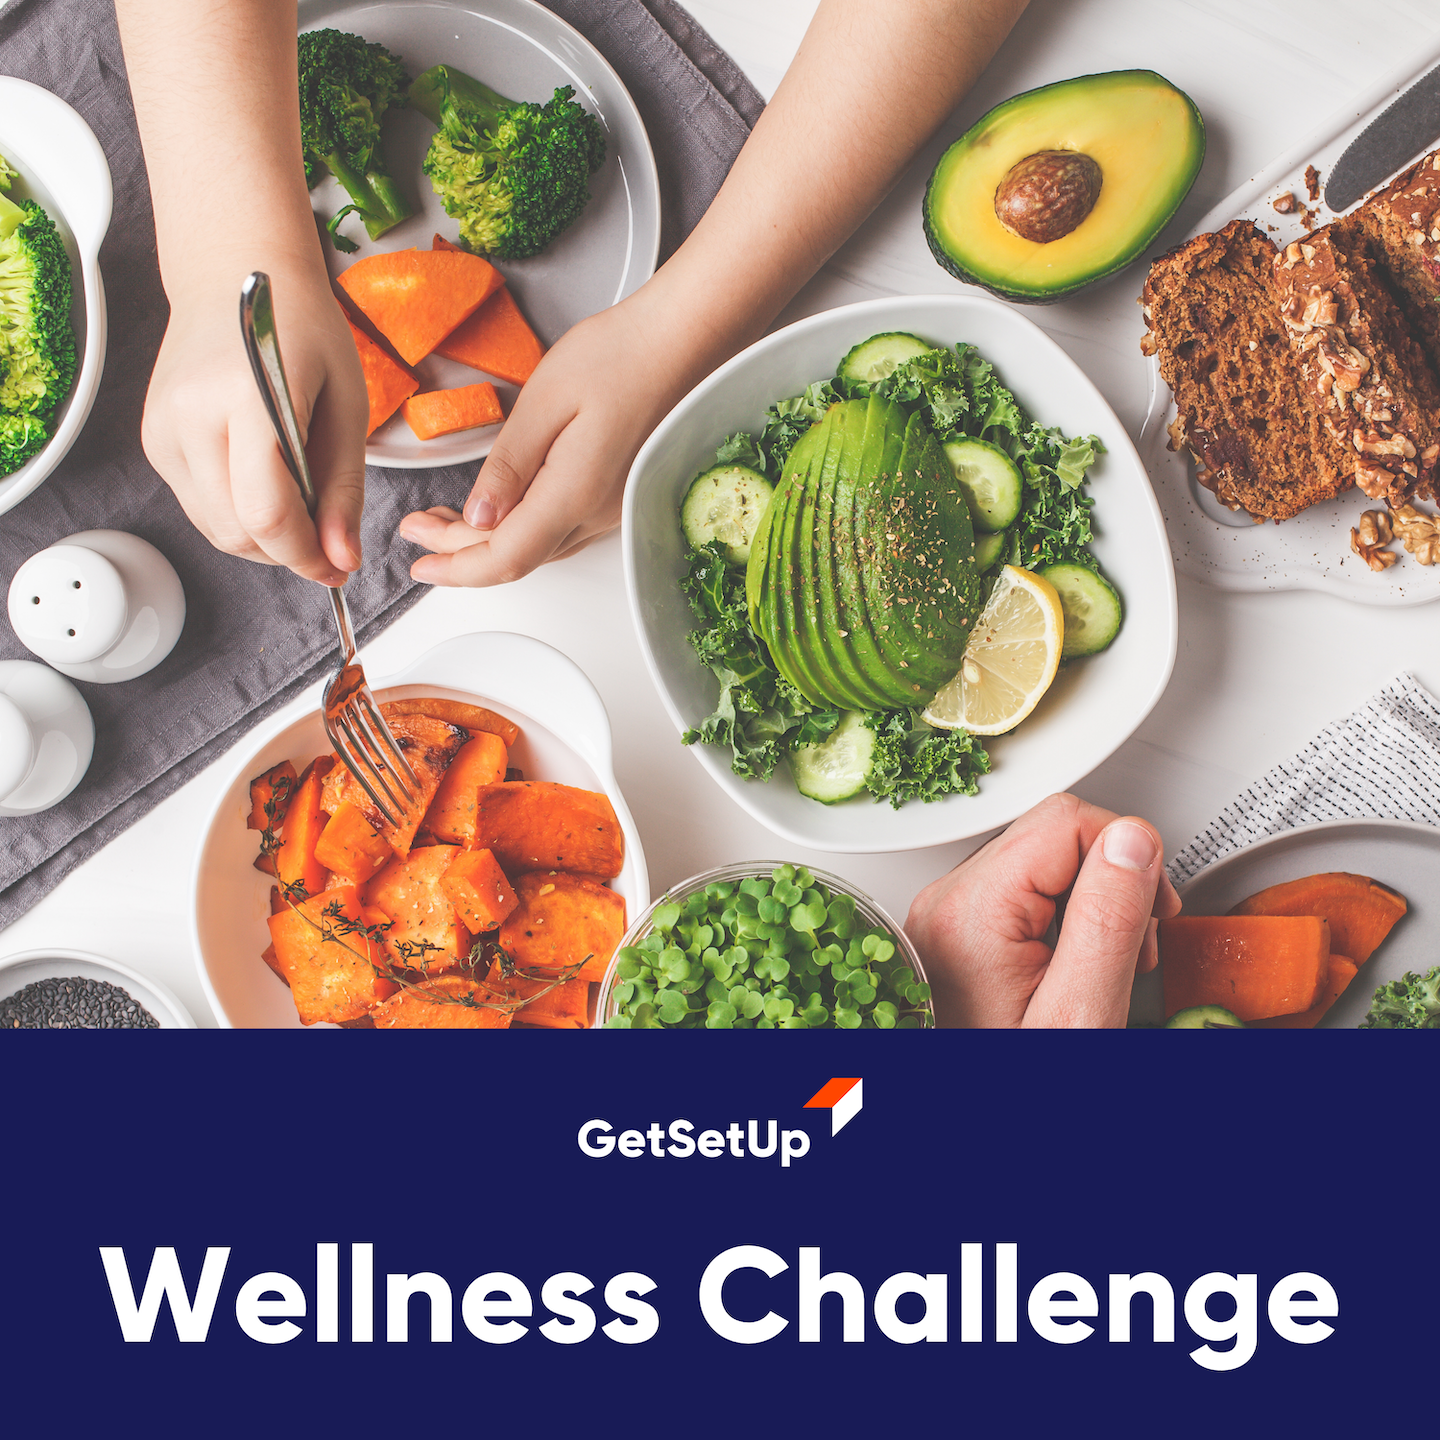 Take the Wellness Challenge for National Wellness Month